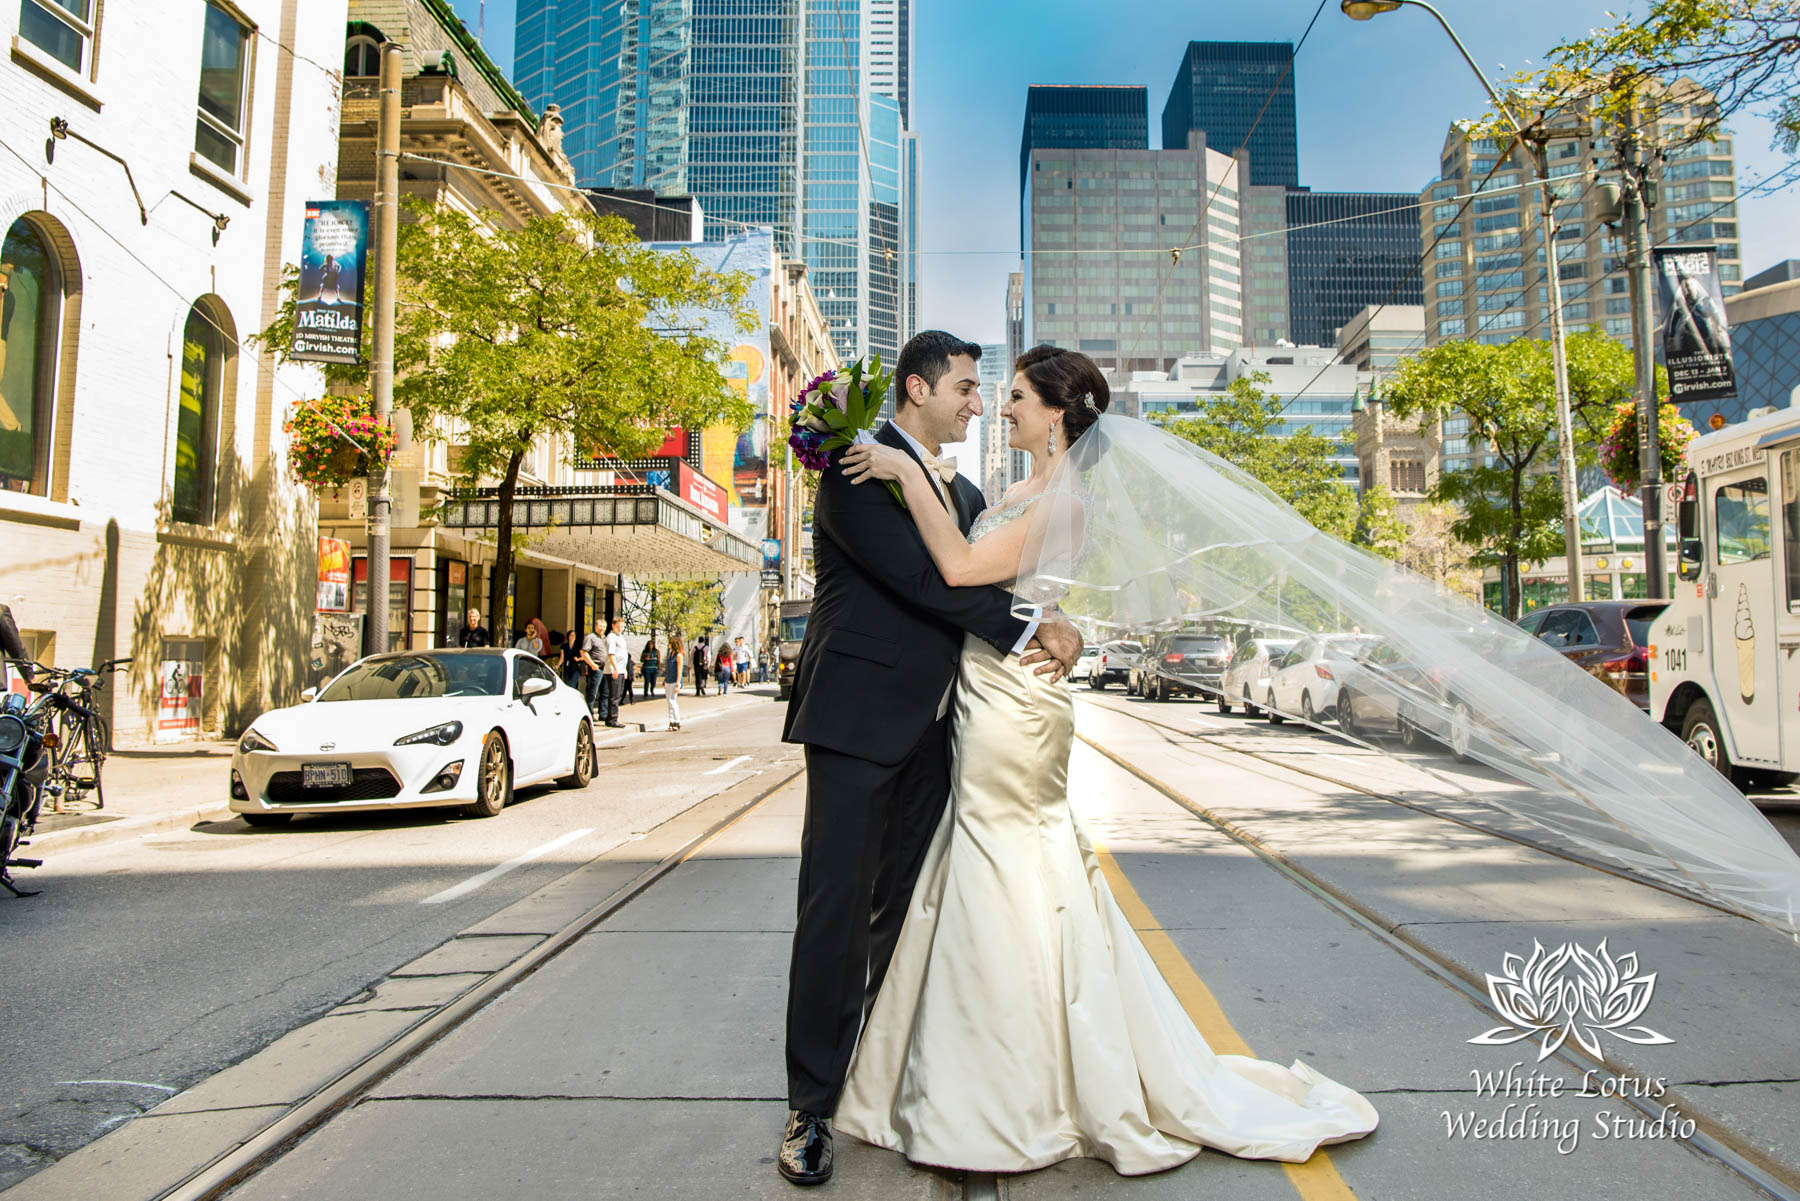 085 - Wedding - Toronto - Downtown wedding photo-walk - PW